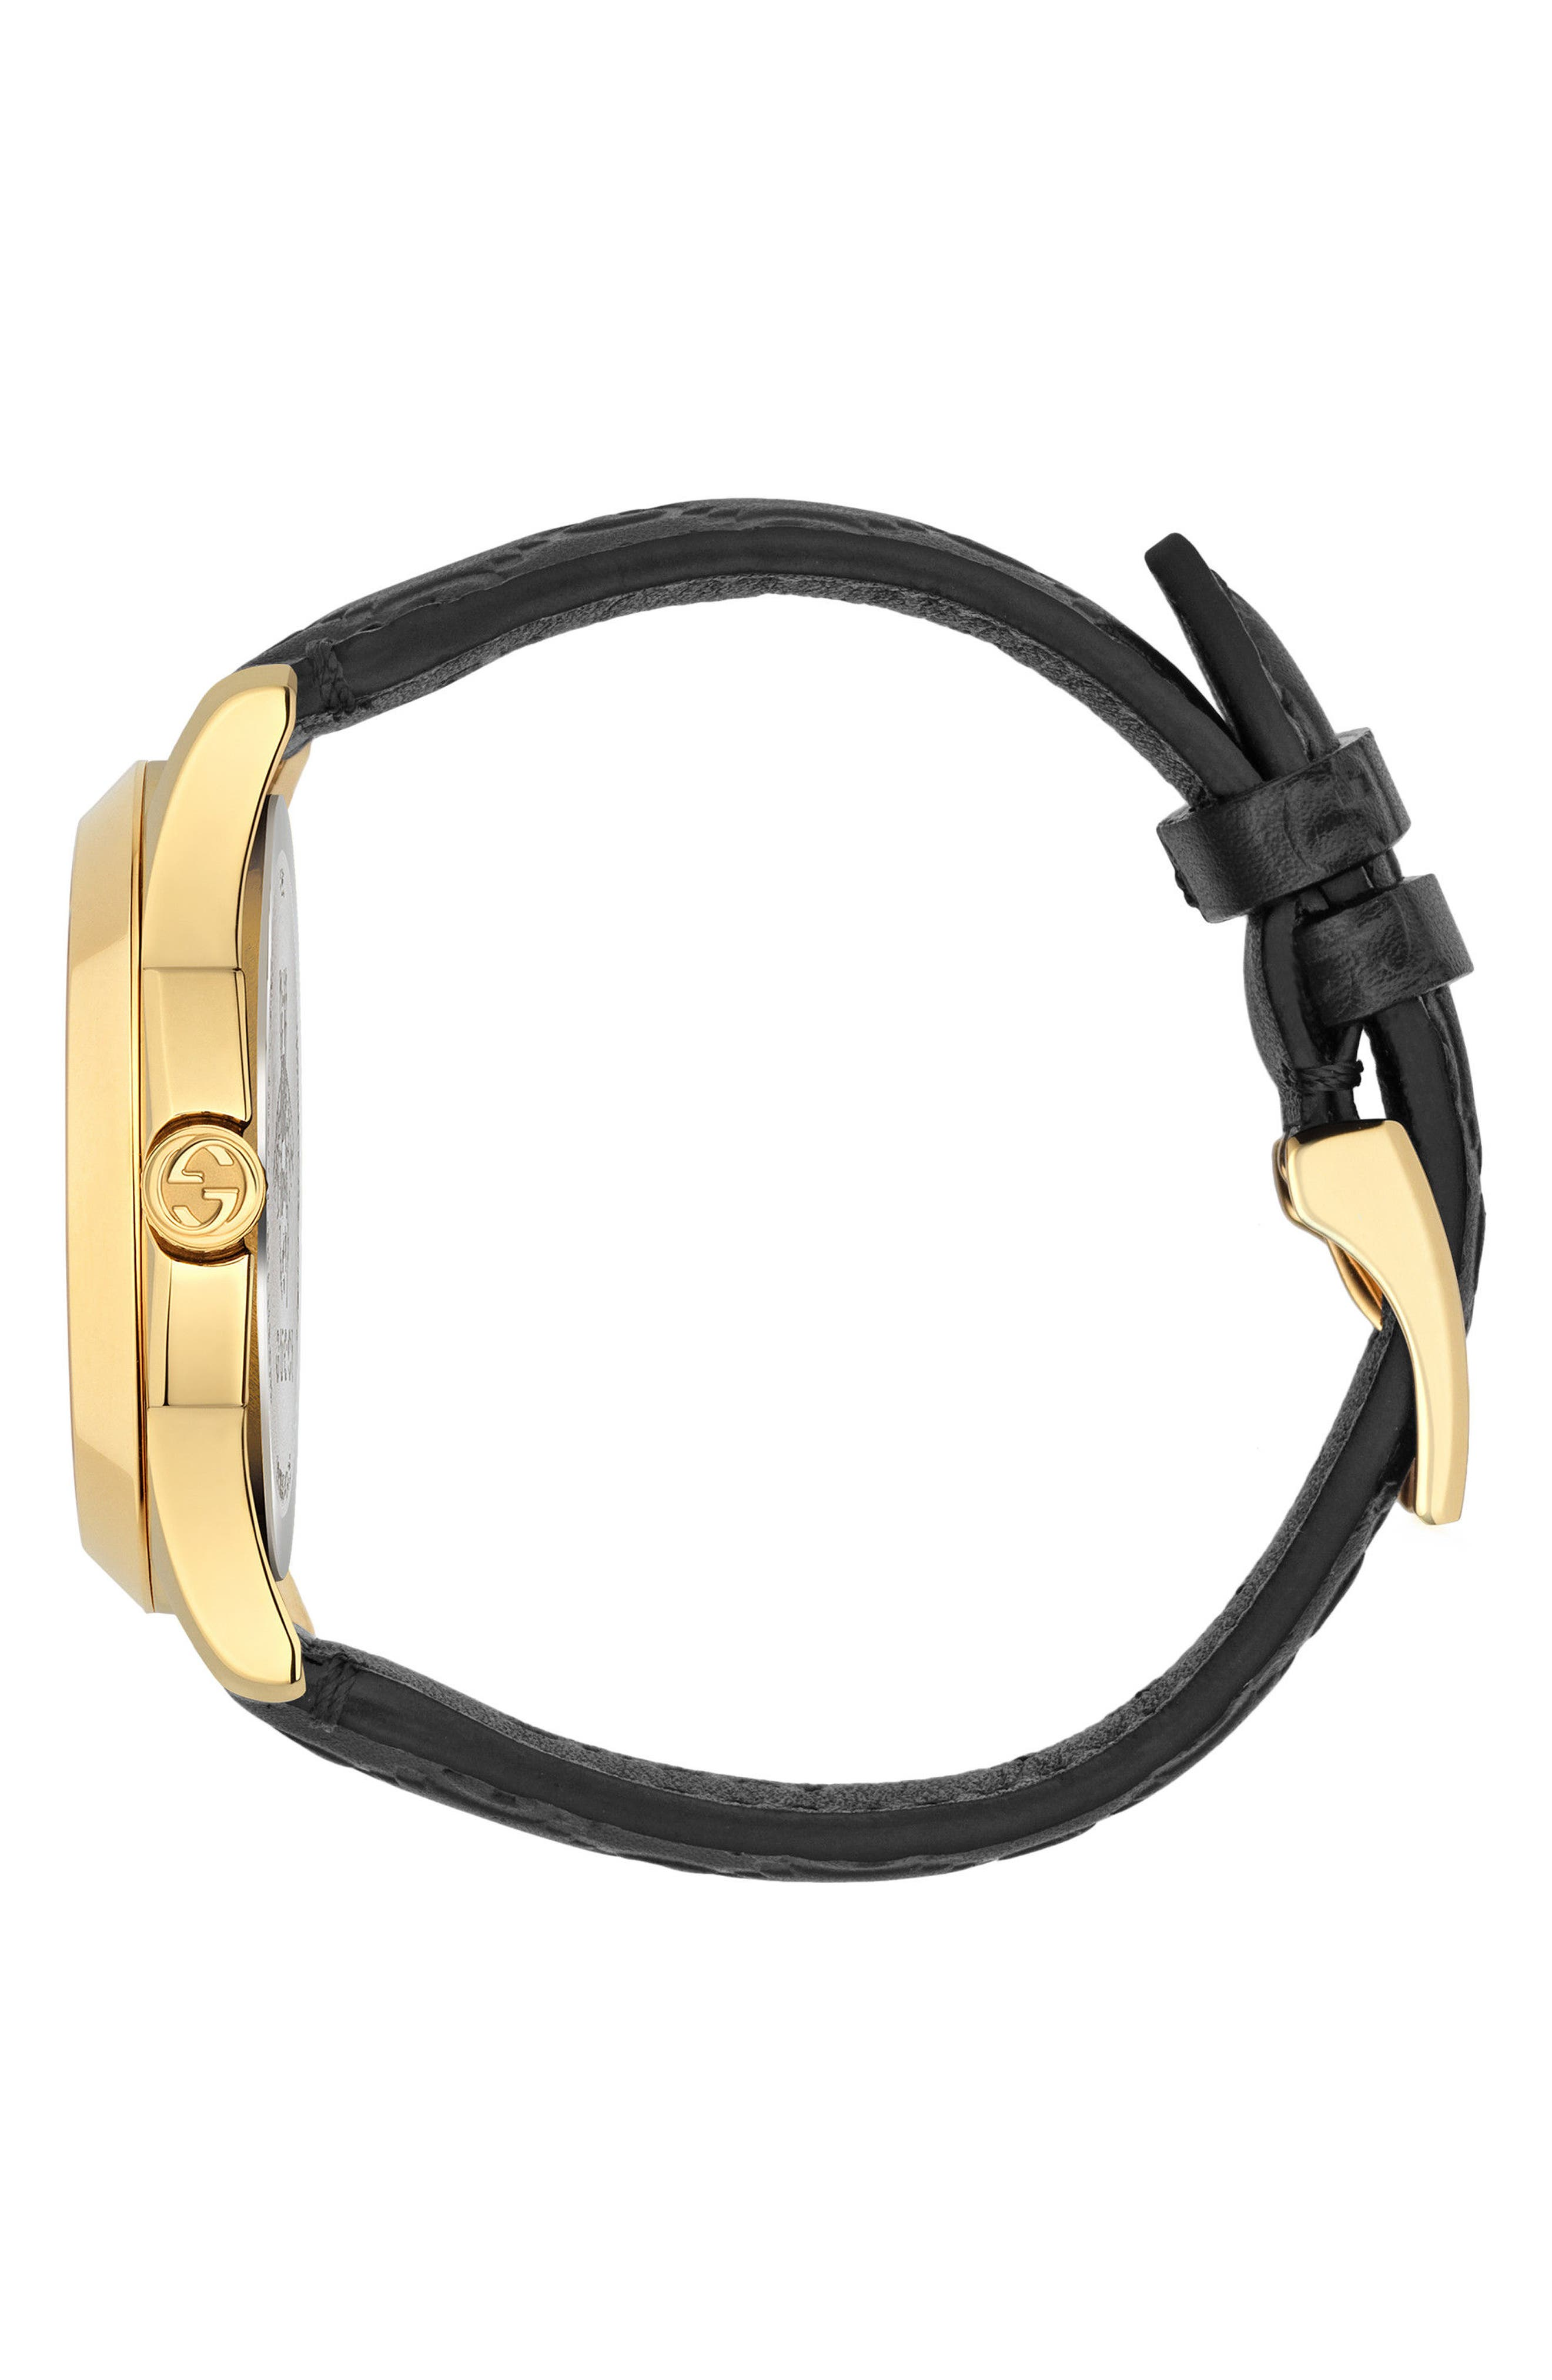 GUCCI, G-Timeless Leather Strap Watch, 38mm, Alternate thumbnail 3, color, BLACK/ GOLD